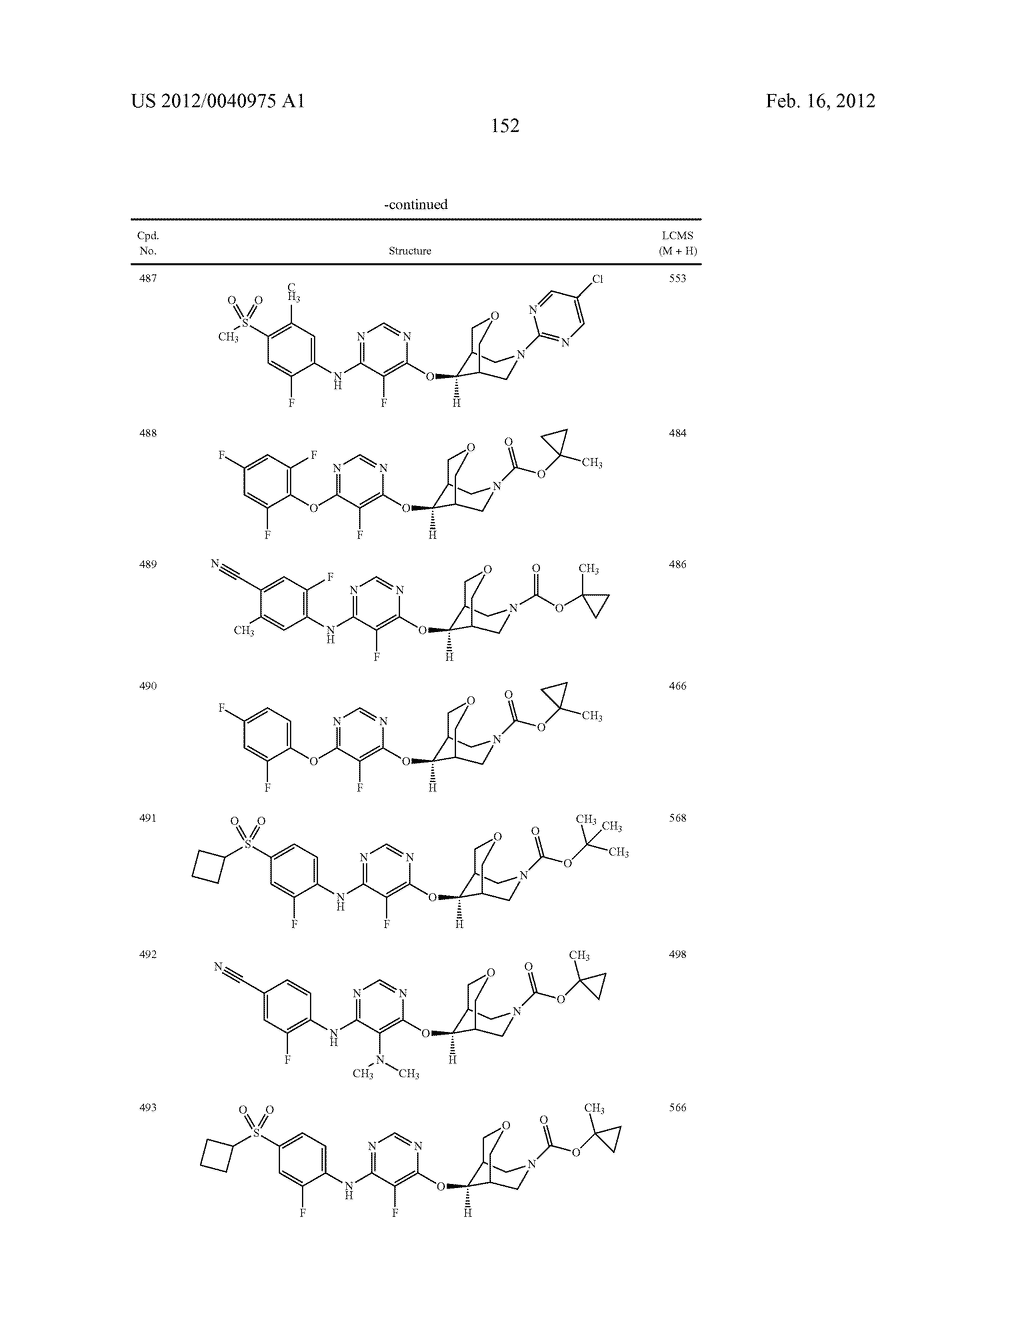 BRIDGED BICYCLIC HETEROCYCLE DERIVATIVES AND METHODS OF USE THEREOF - diagram, schematic, and image 153